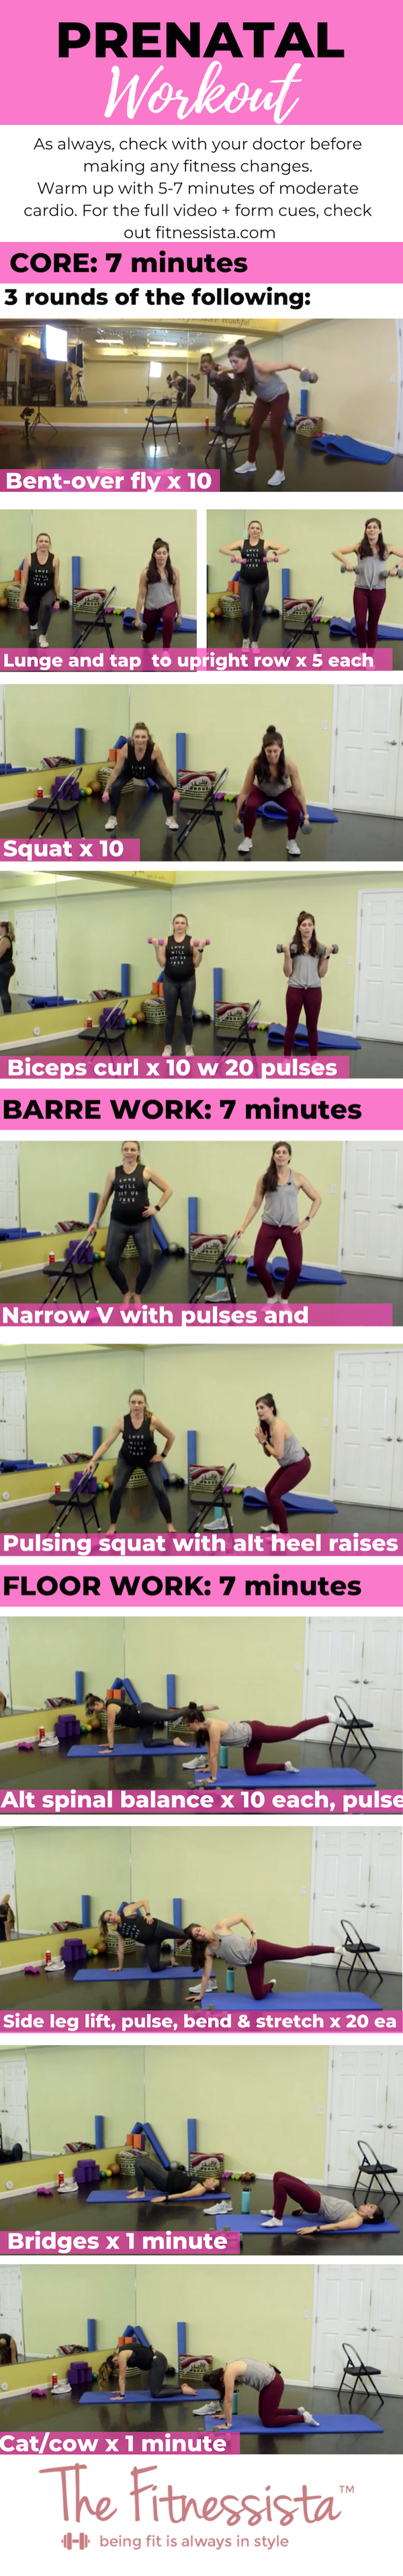 Prenatal workout with safe pregnancy exercises